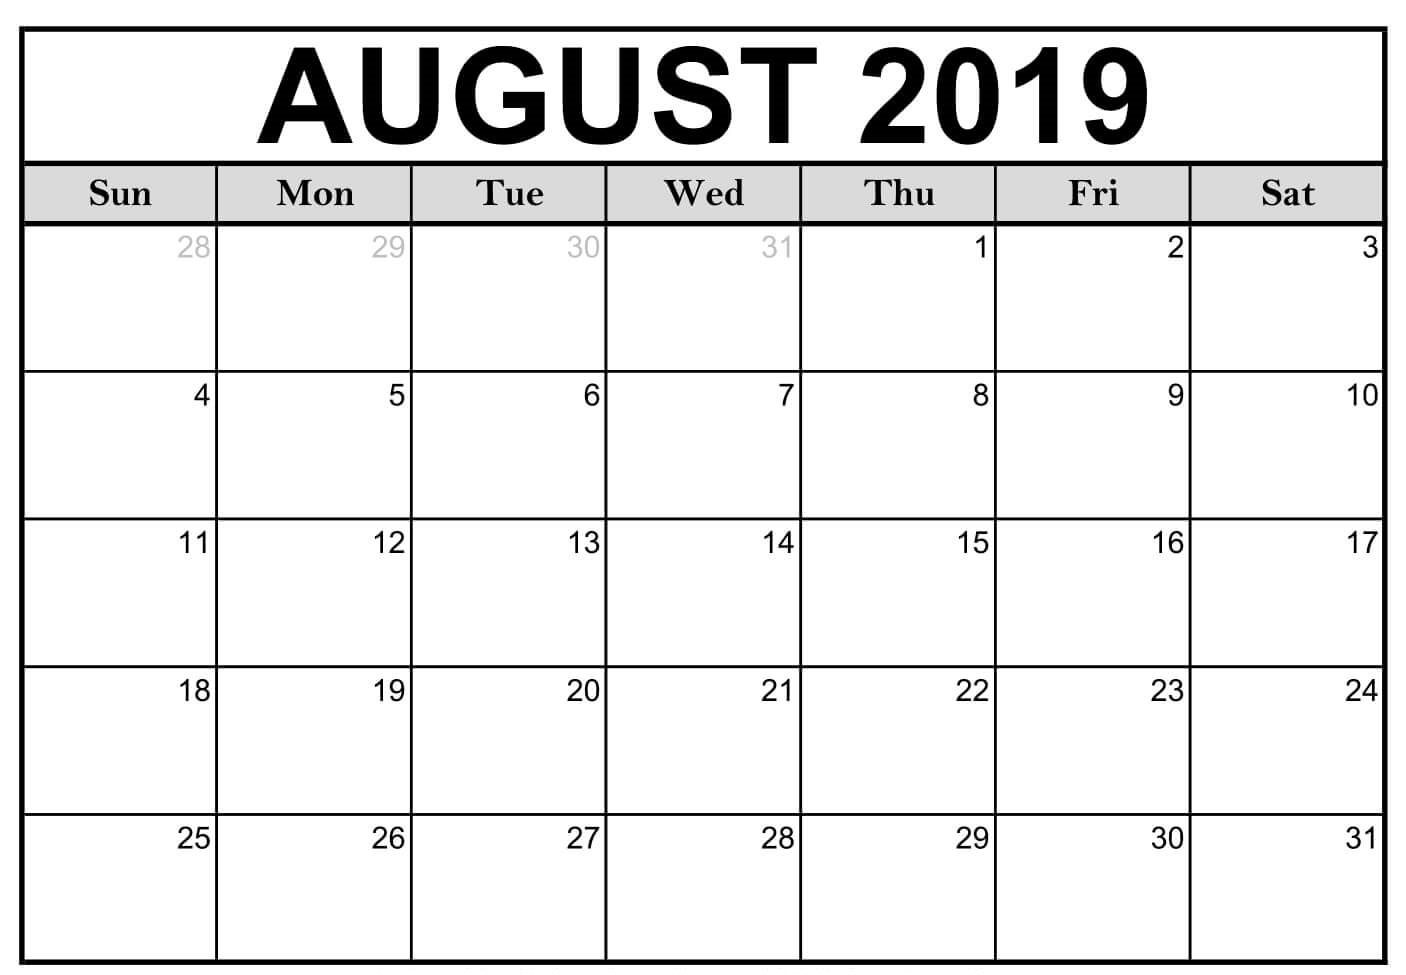 Fillable Calendar For August 2019 Printable Blank Template with regard to Blank Fillable Calendar